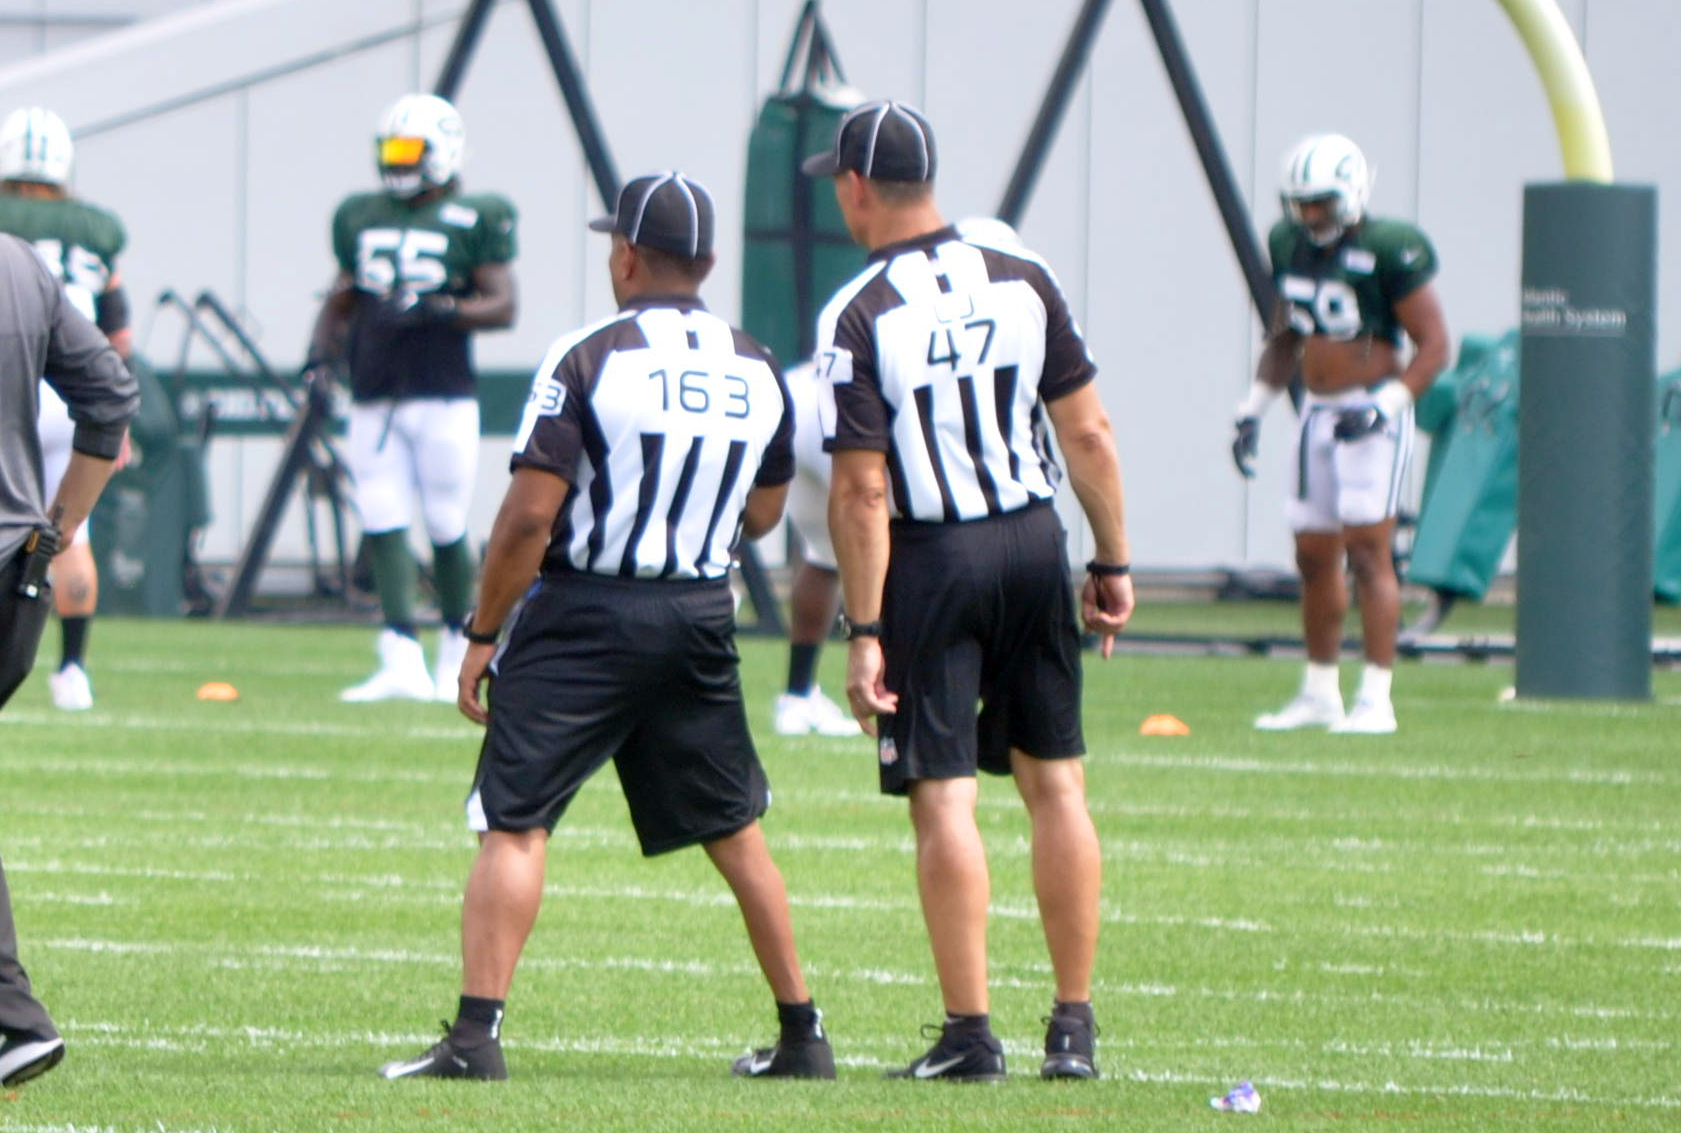 With the players, officials are vying for the NFL in college invitational games